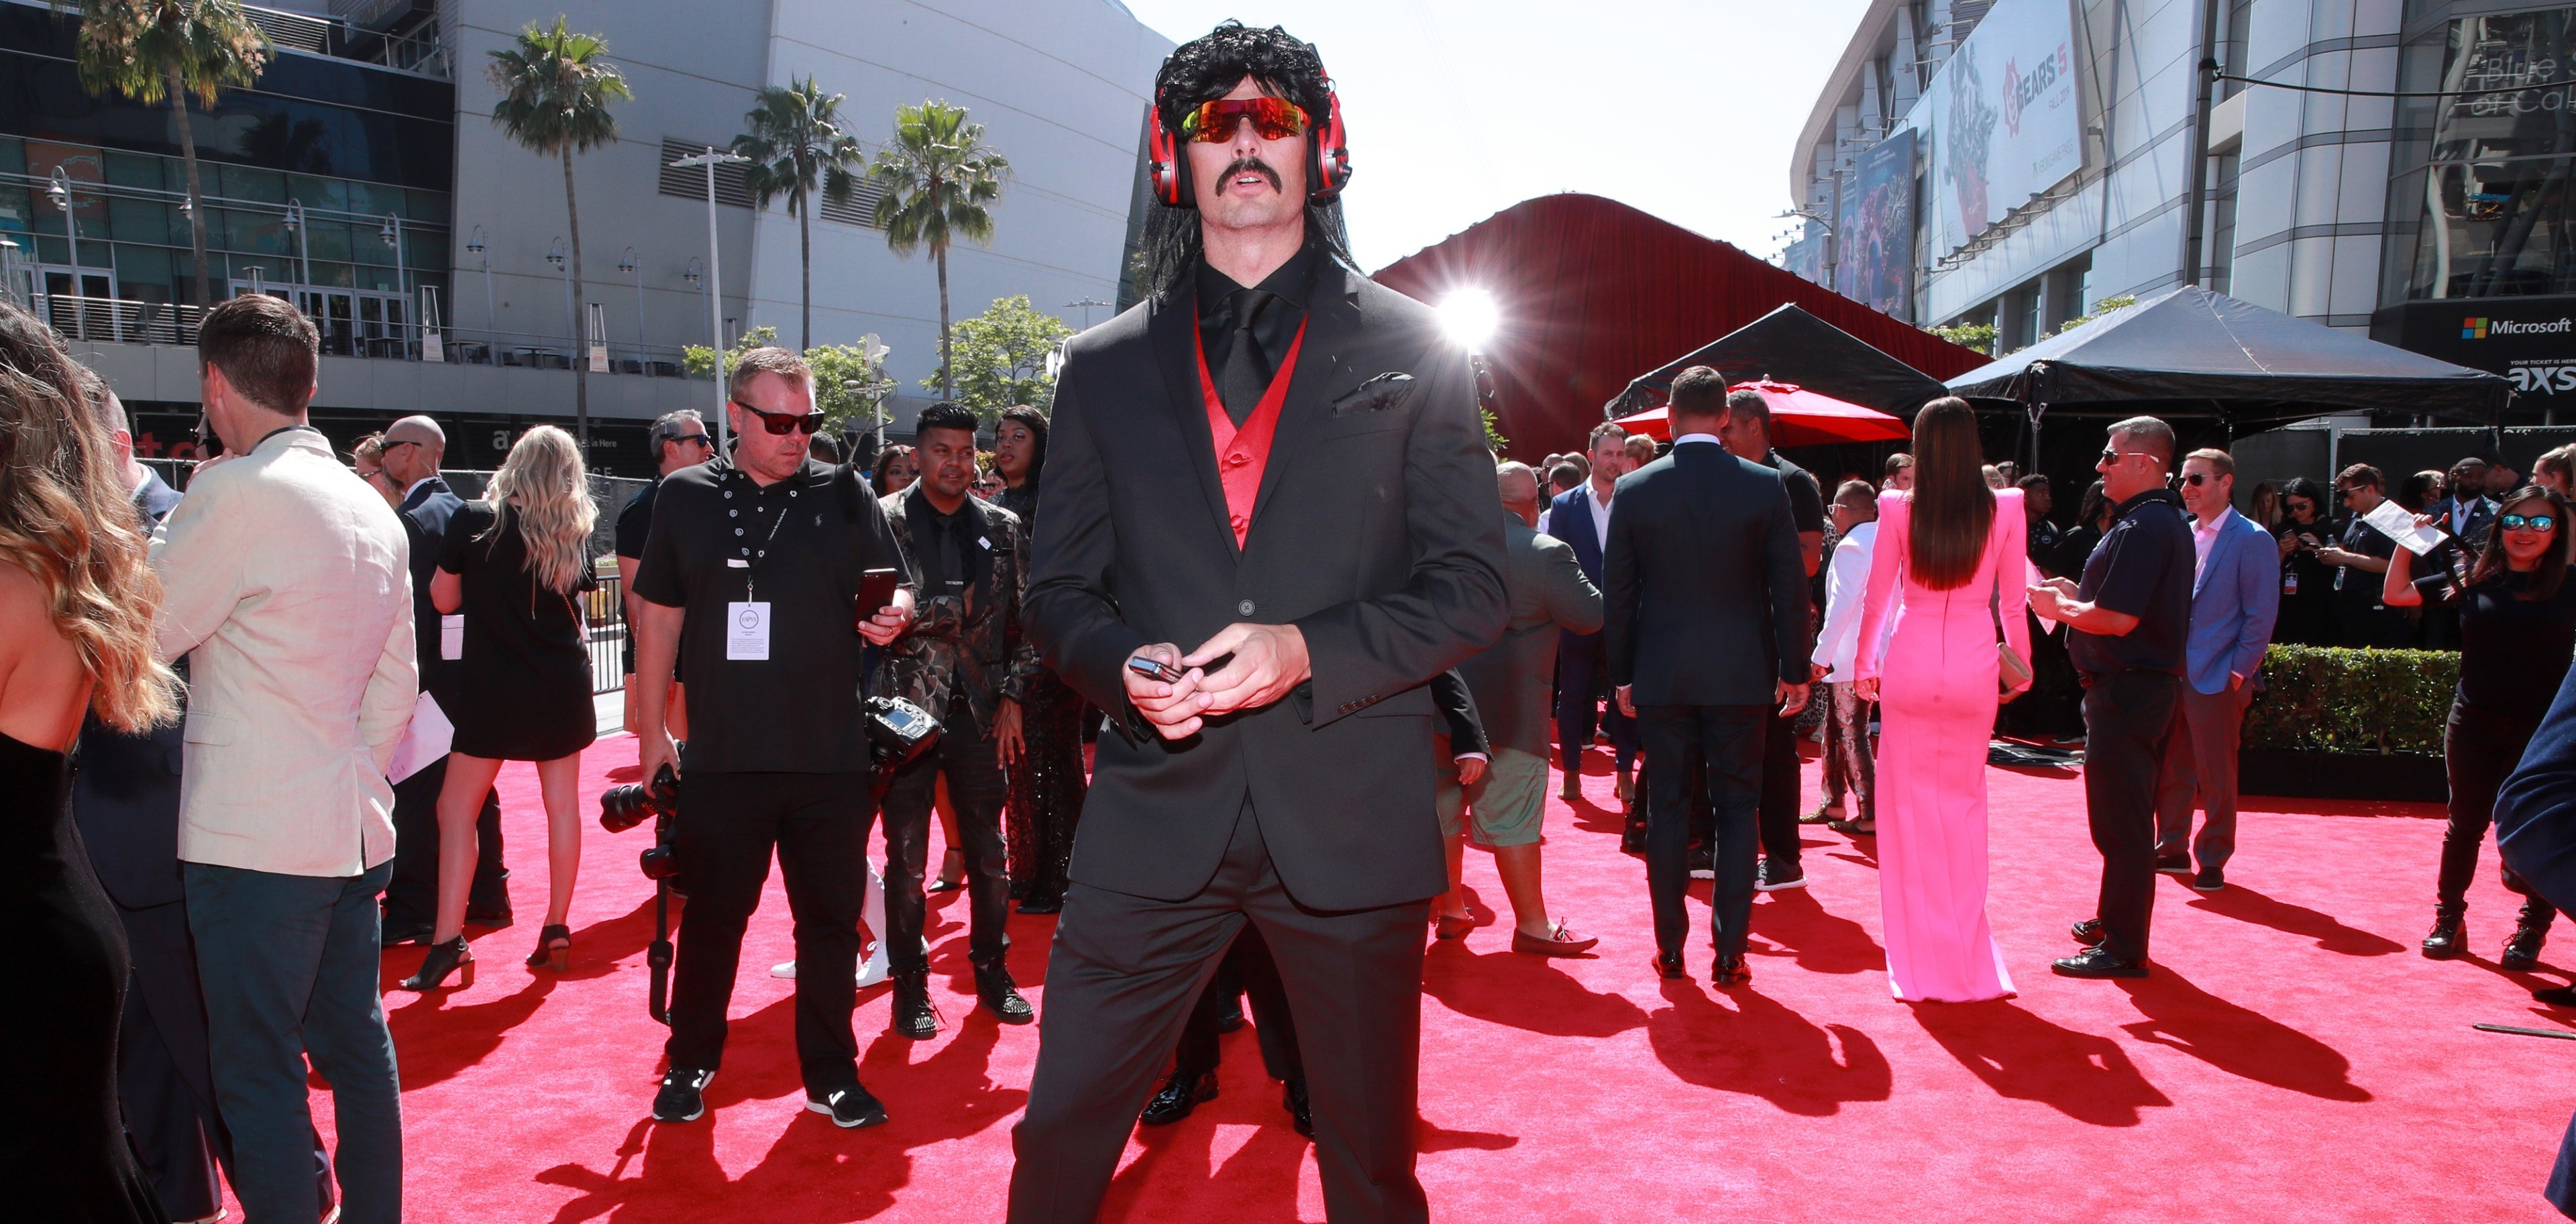 Dr Disrespect Finally Speaks Out About Twitch Ban Den Of